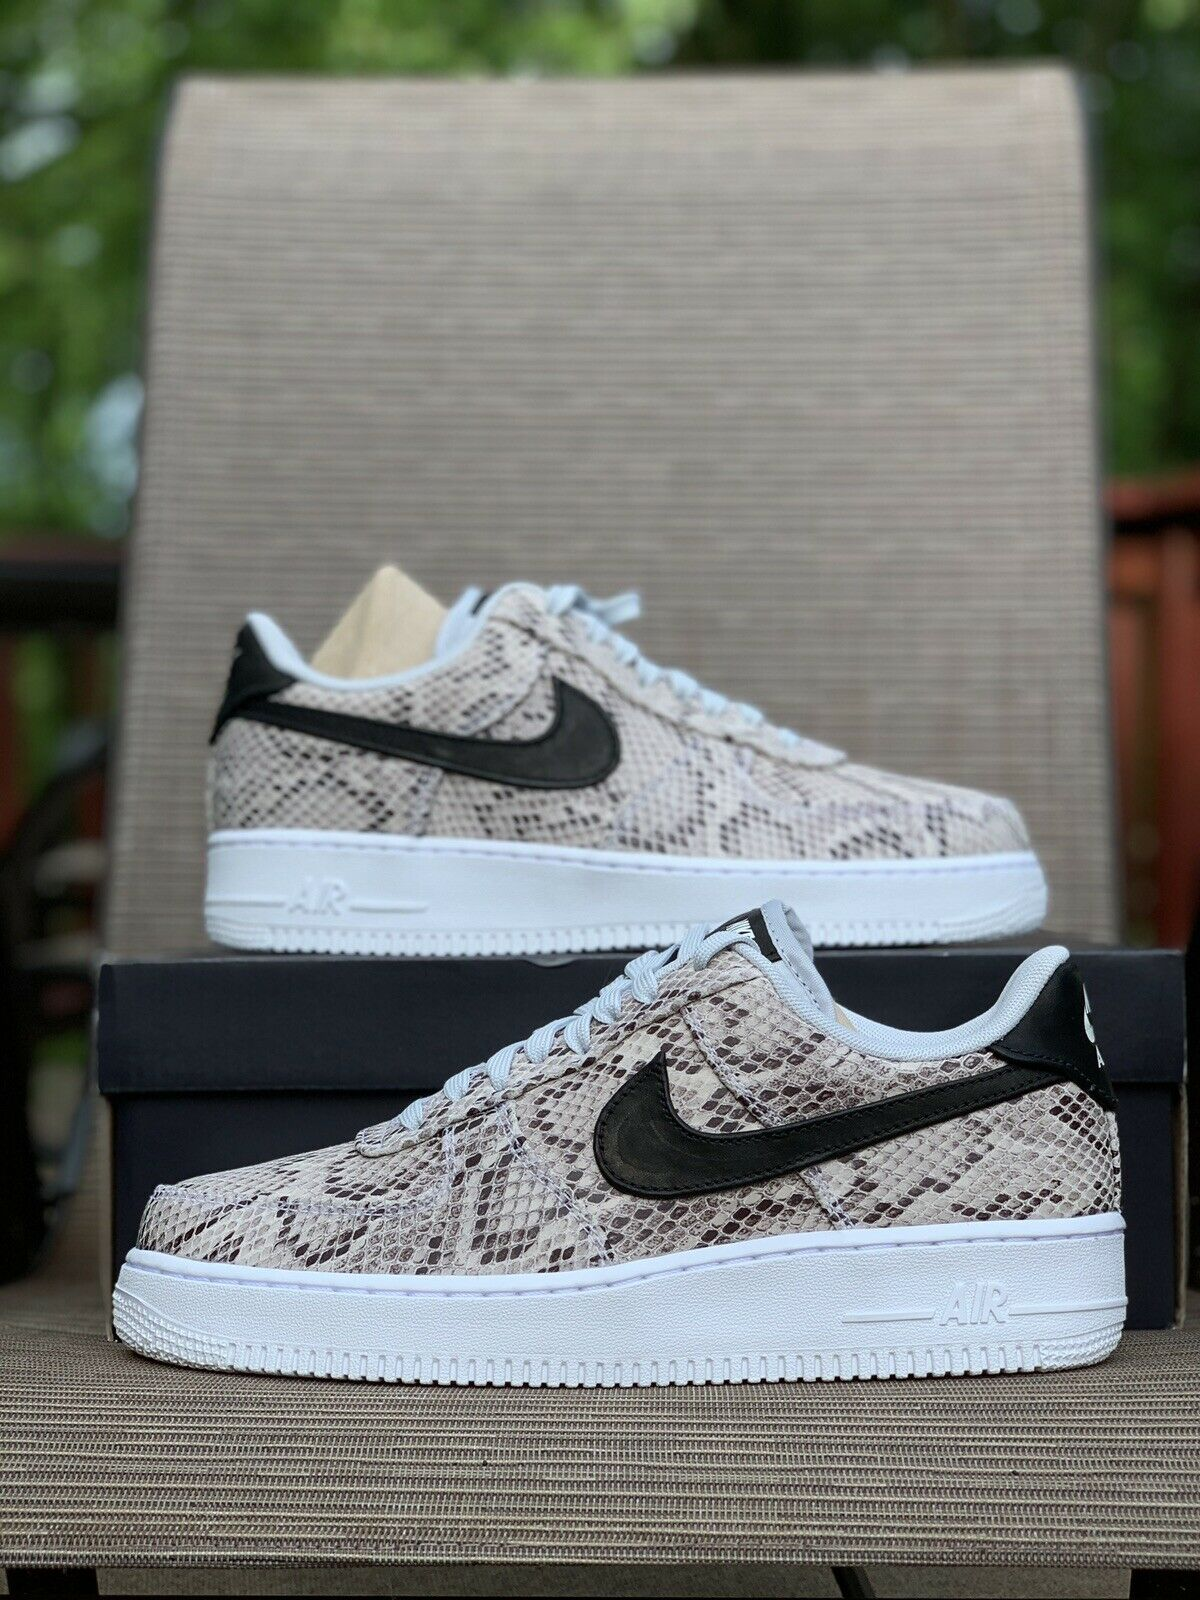 Nike Air Force 1 Low Snakeskin 2019